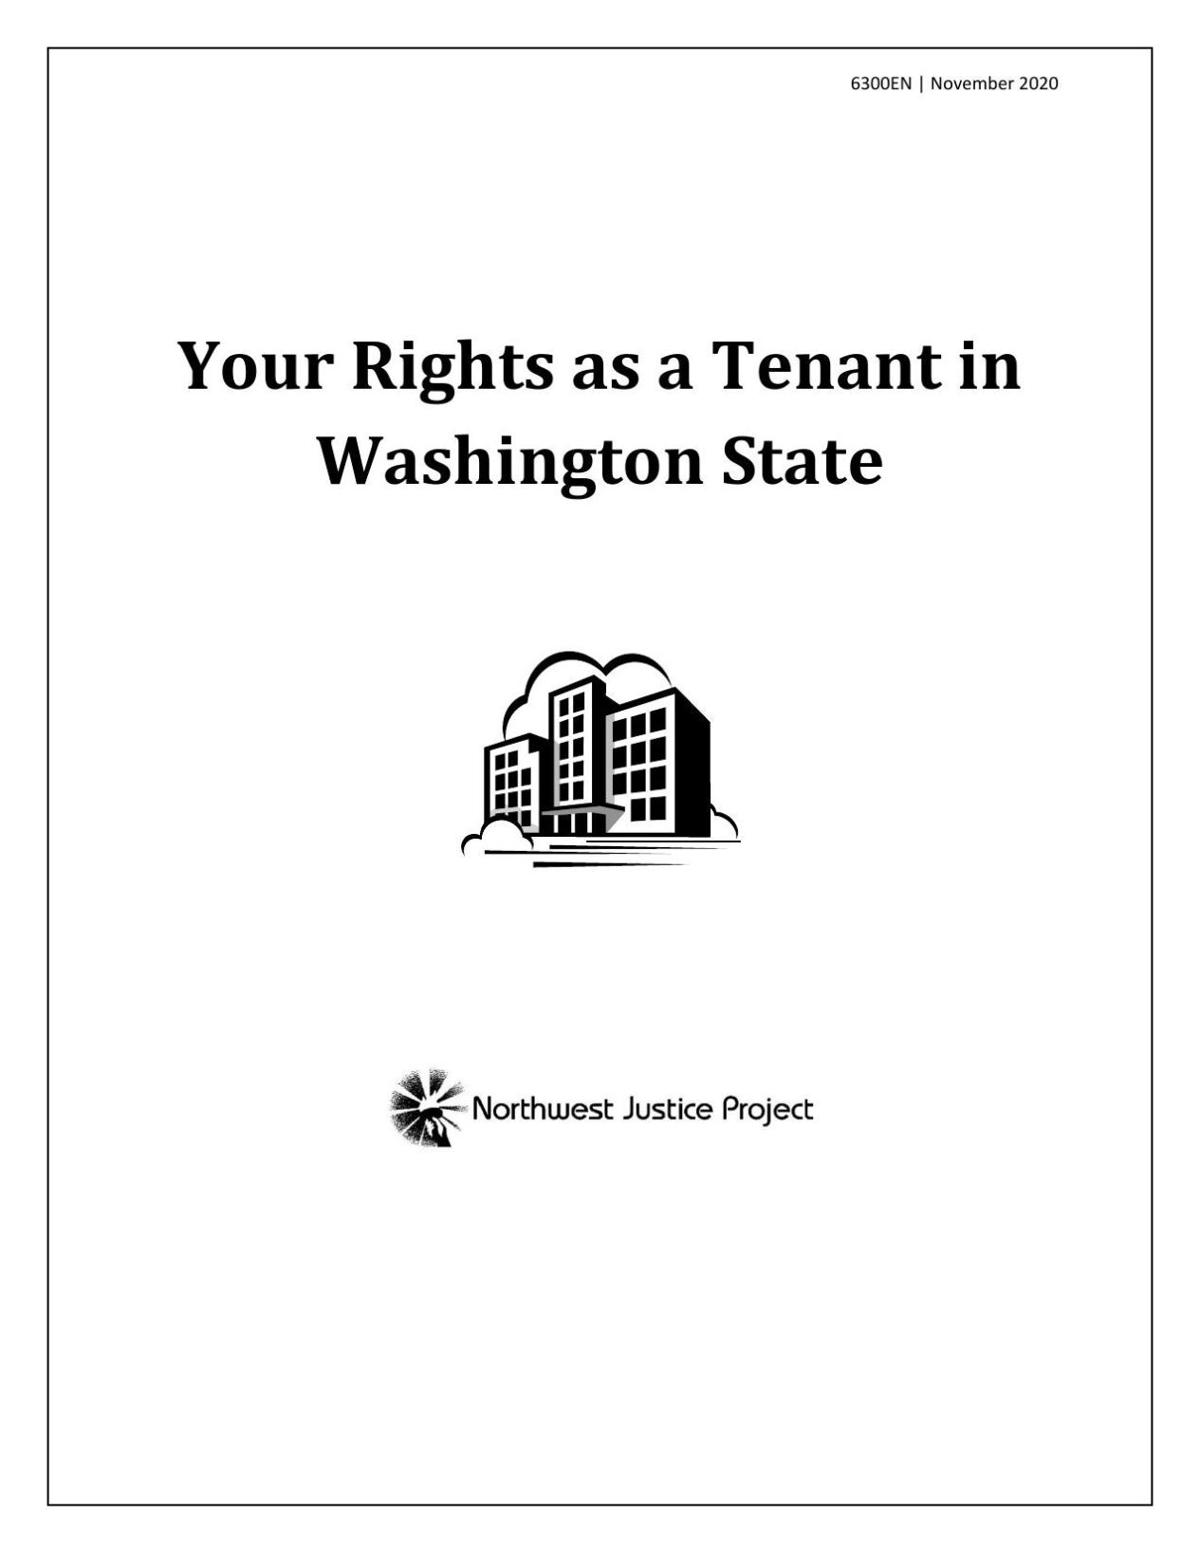 Northwest Justice Project: Your Rights as a Tenant in Washington State